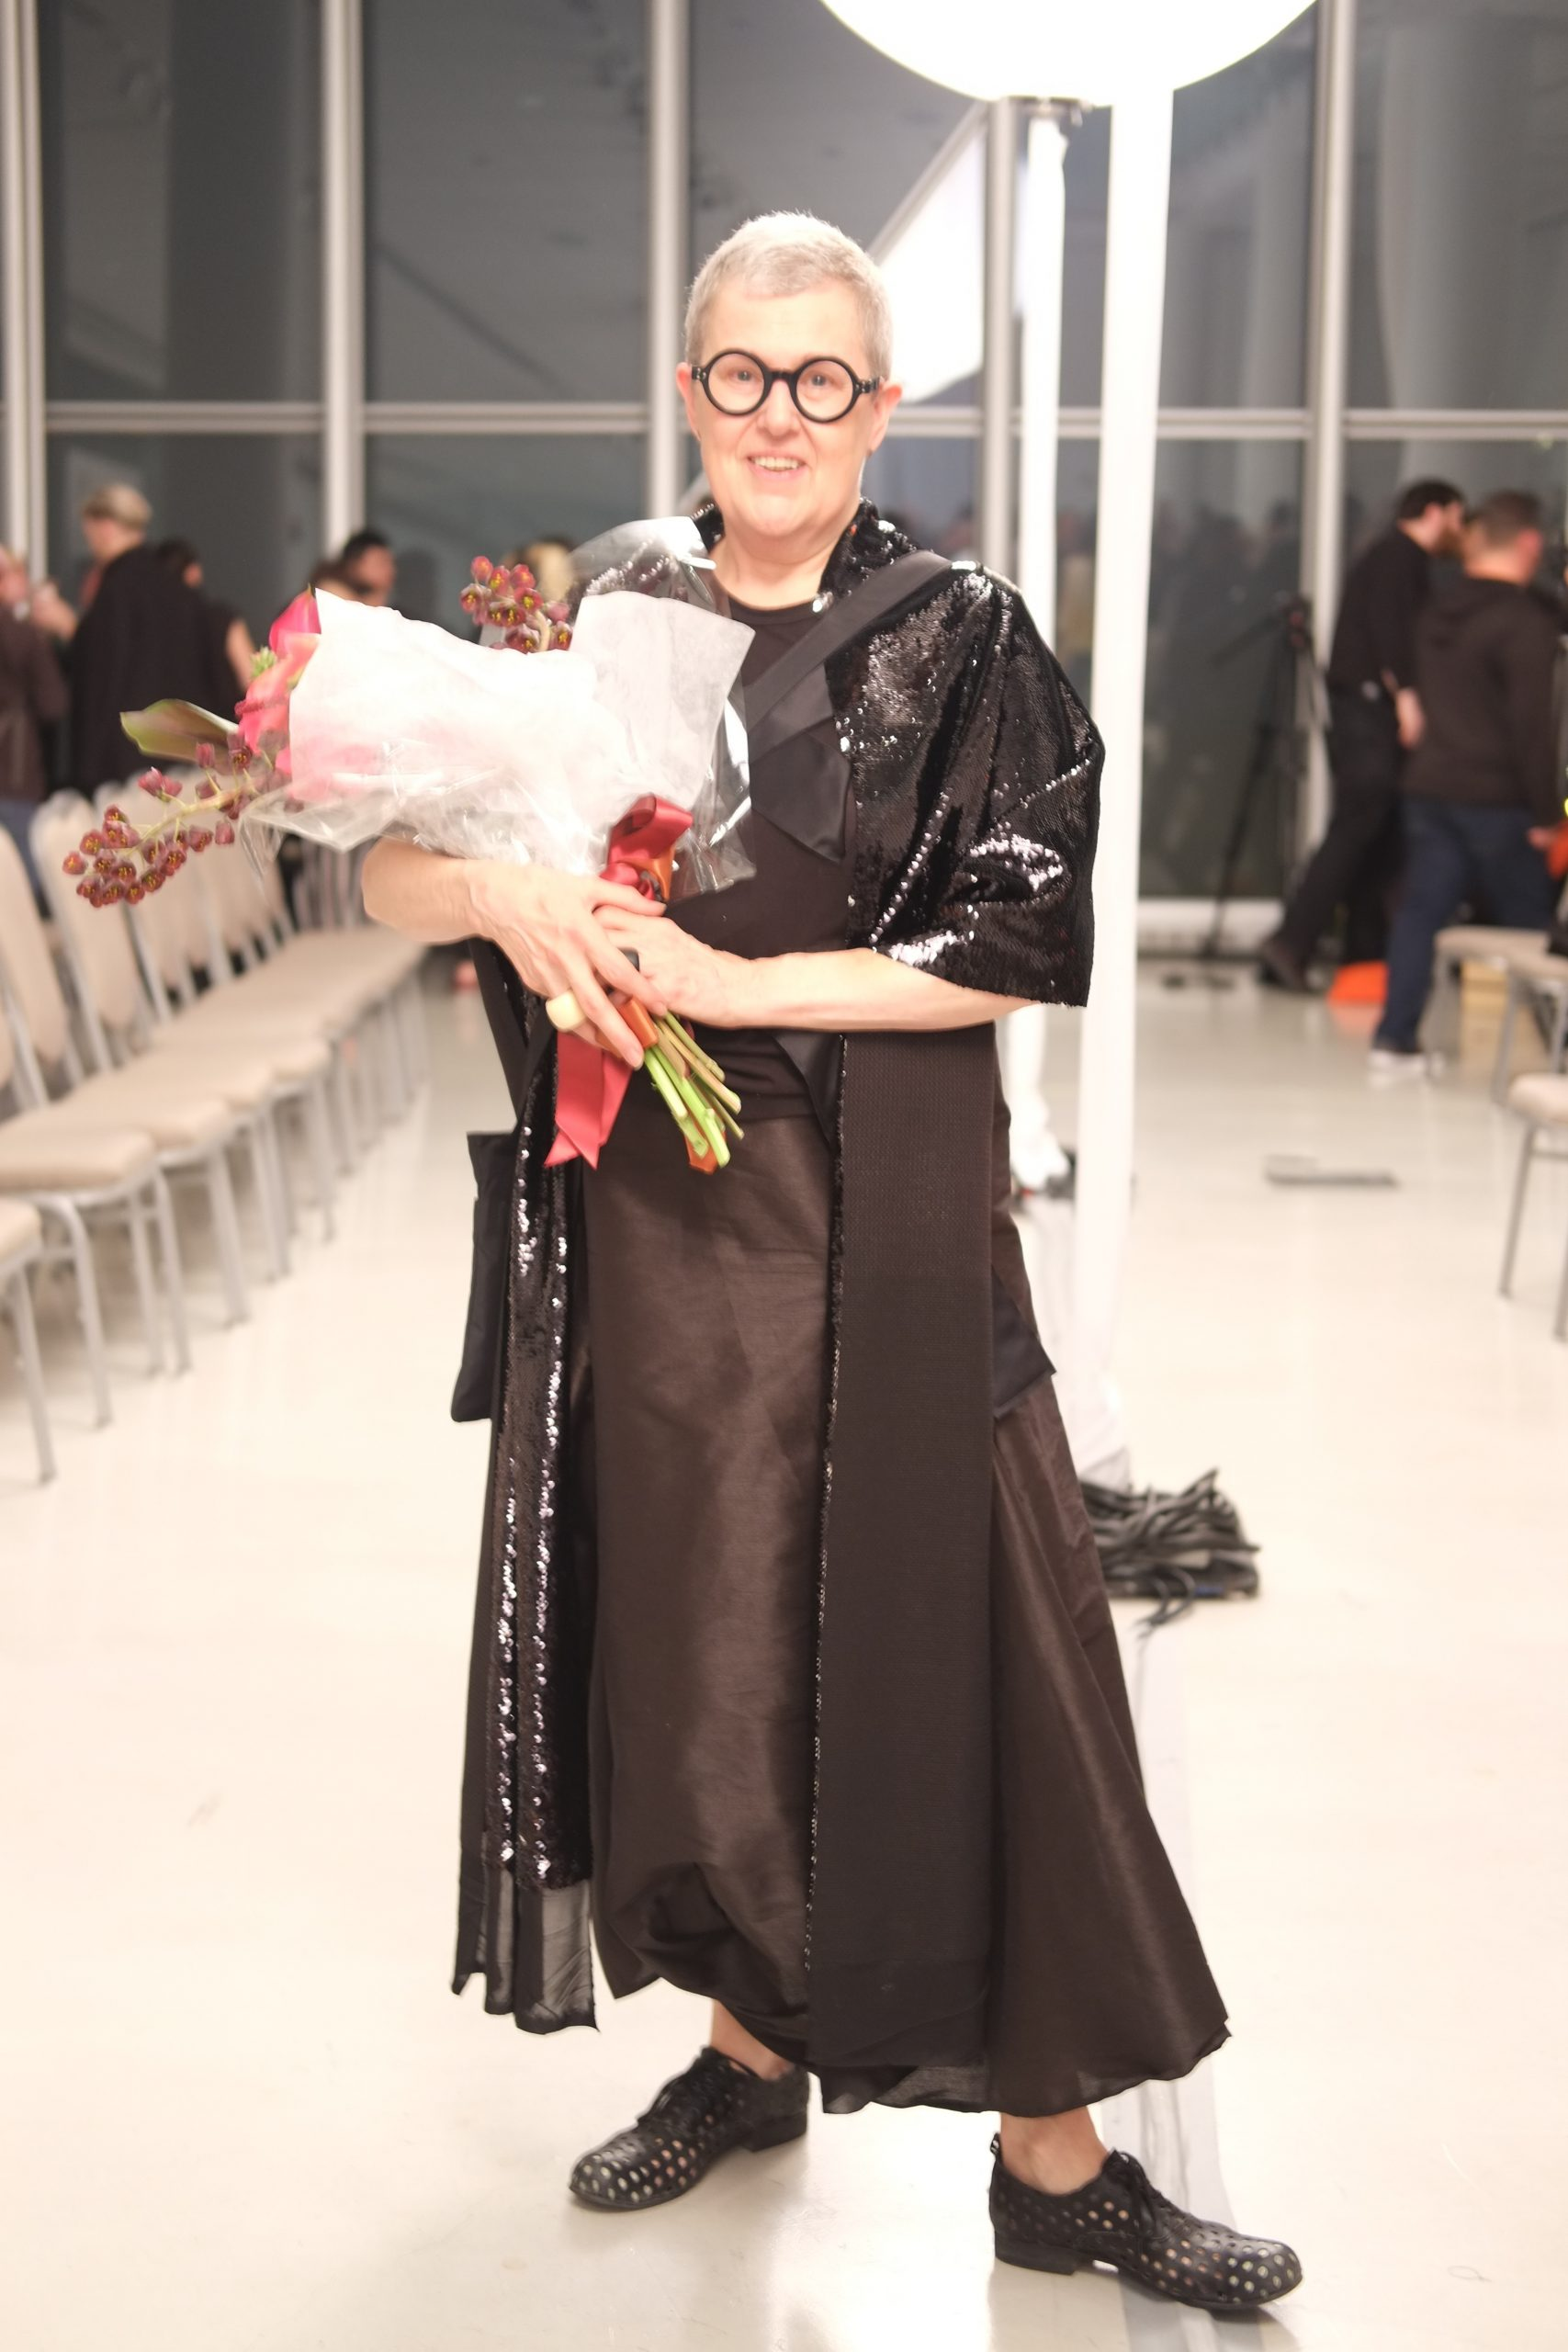 SAIC professor and accessory designer Gillion Carrara was an honoree this year. She will be leaving her position as the director of the Fashion Resource Center to dedicate more time to her designs.